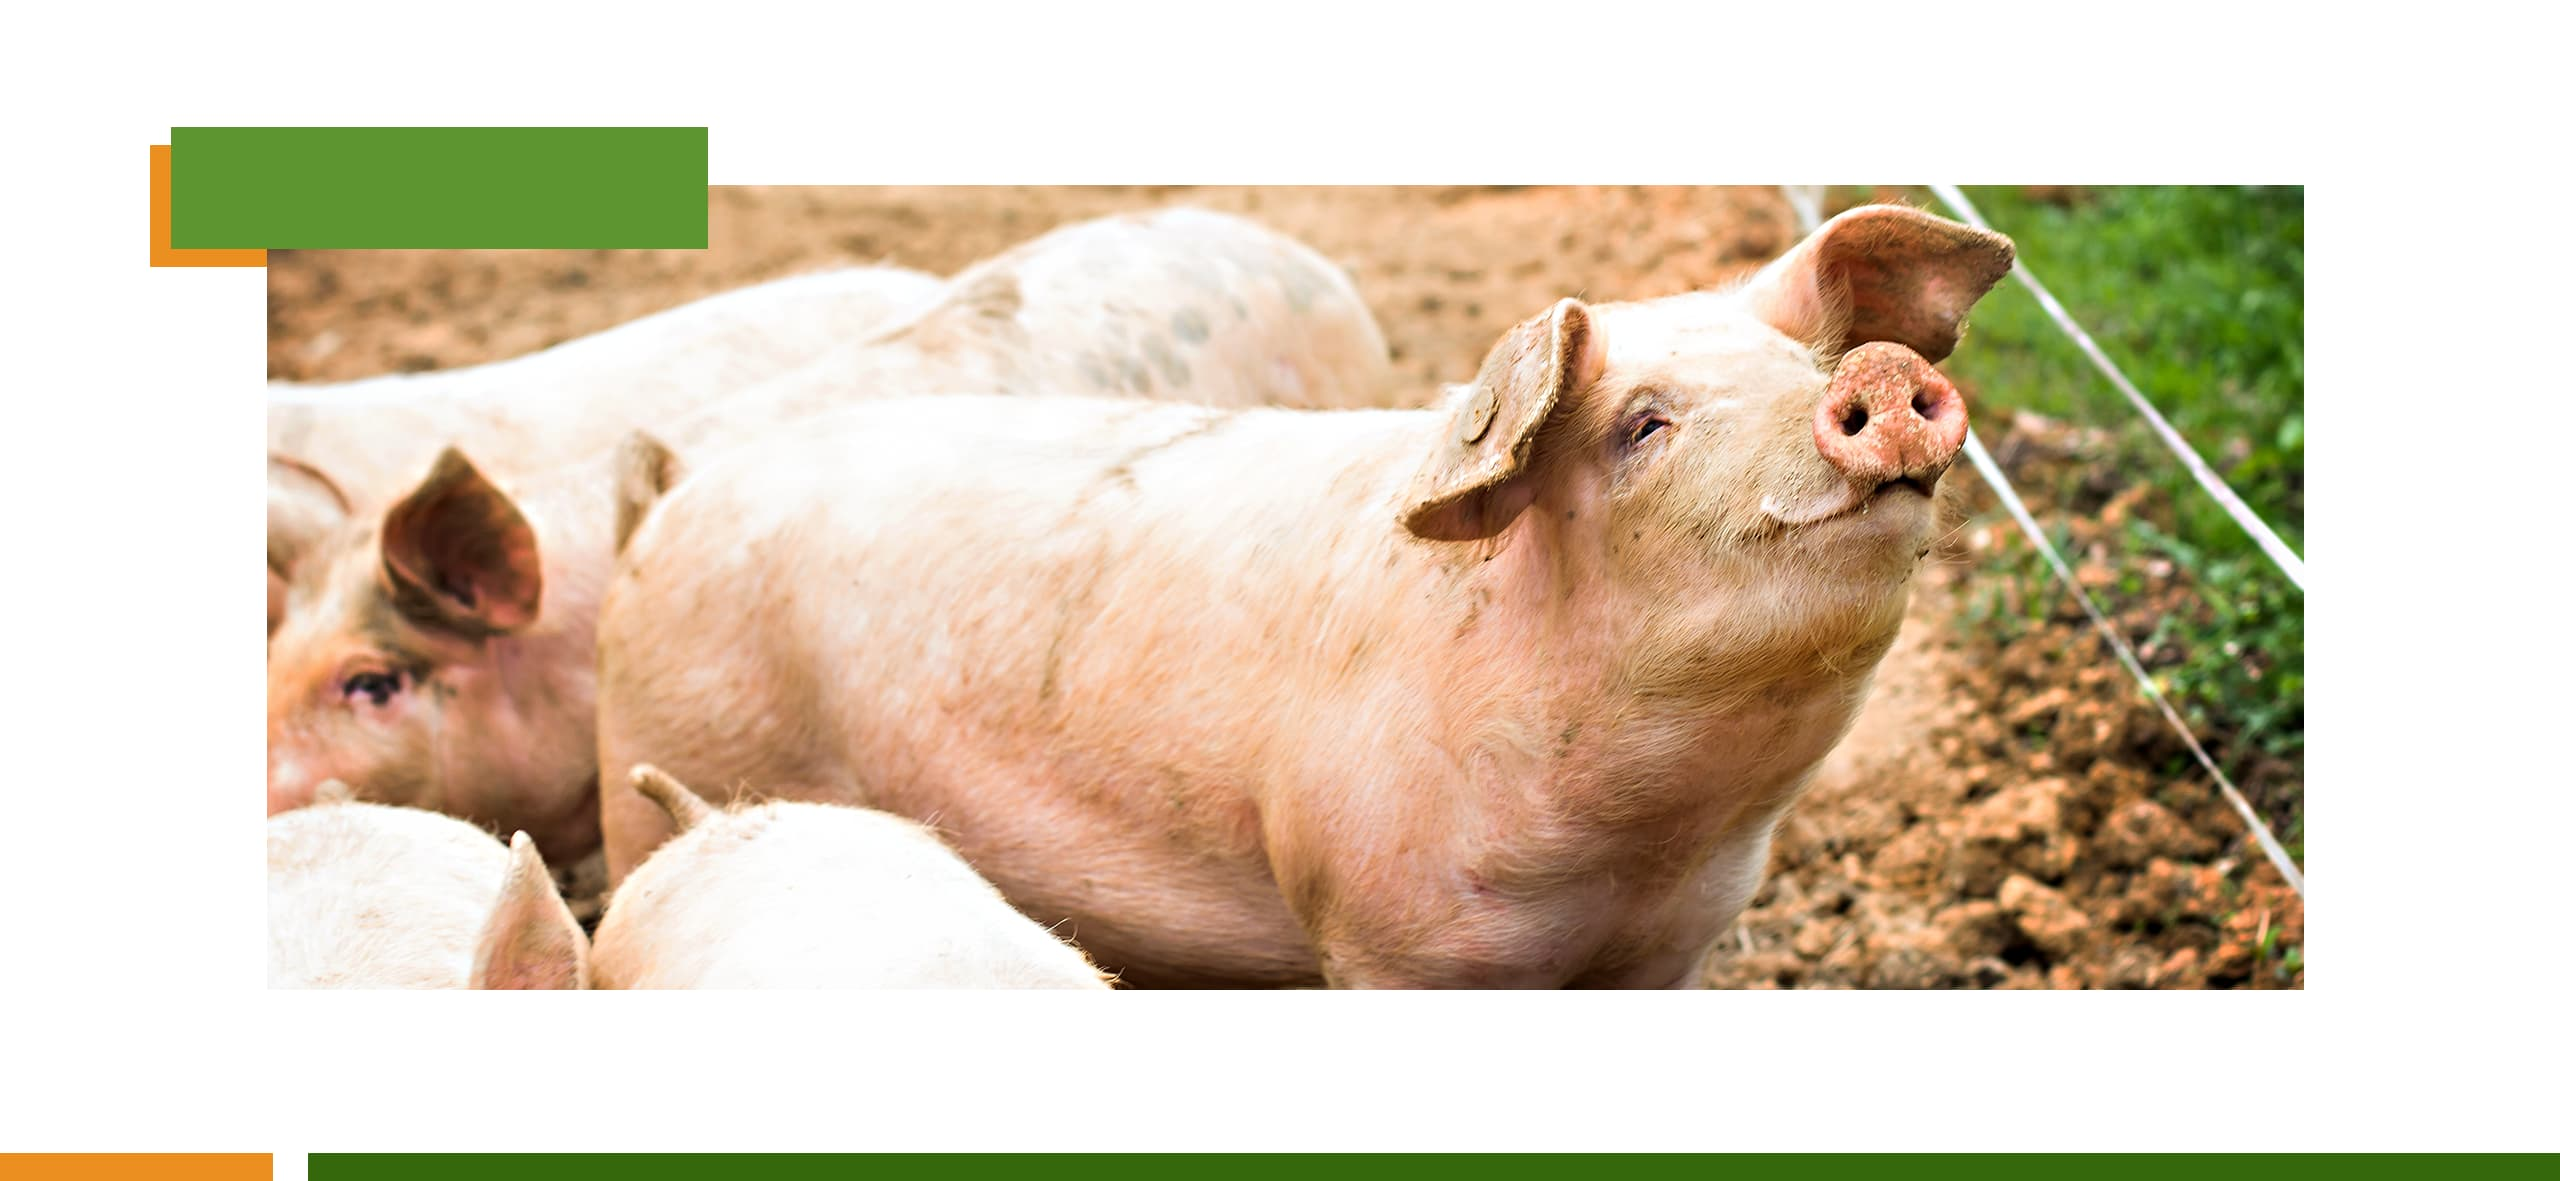 Safe Management Series: correct nutritional management avoids competition for feed and improves swine production rates